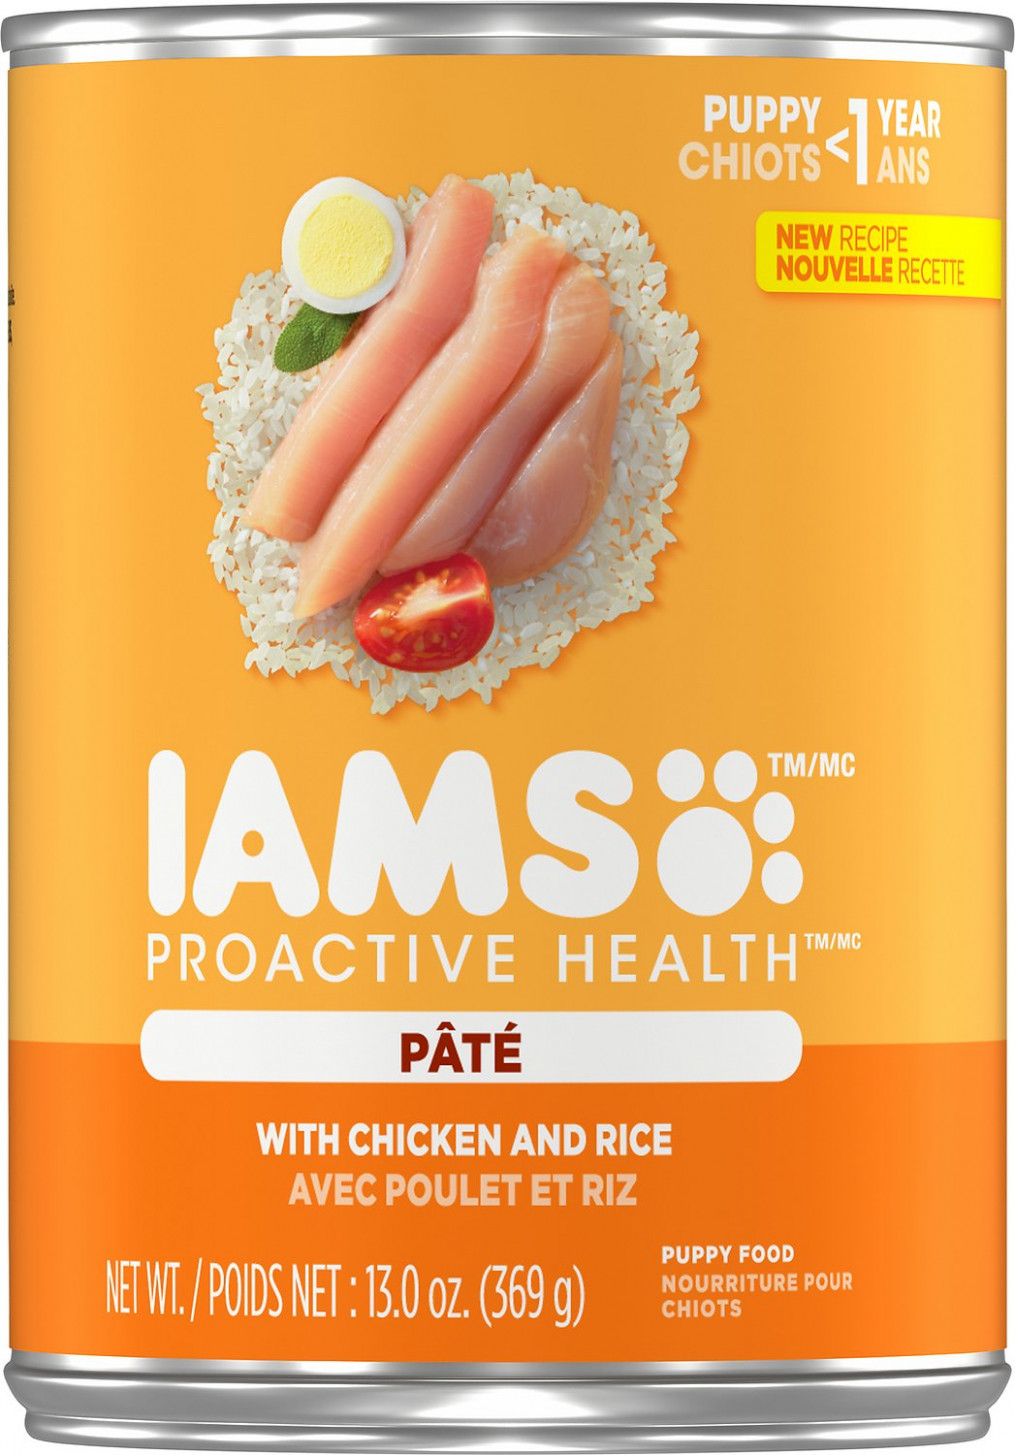 Iams ProActive Health Puppy With Chicken & Rice Pate Canned Dog Food,  11-oz, case of 11 - recipes using only canned food